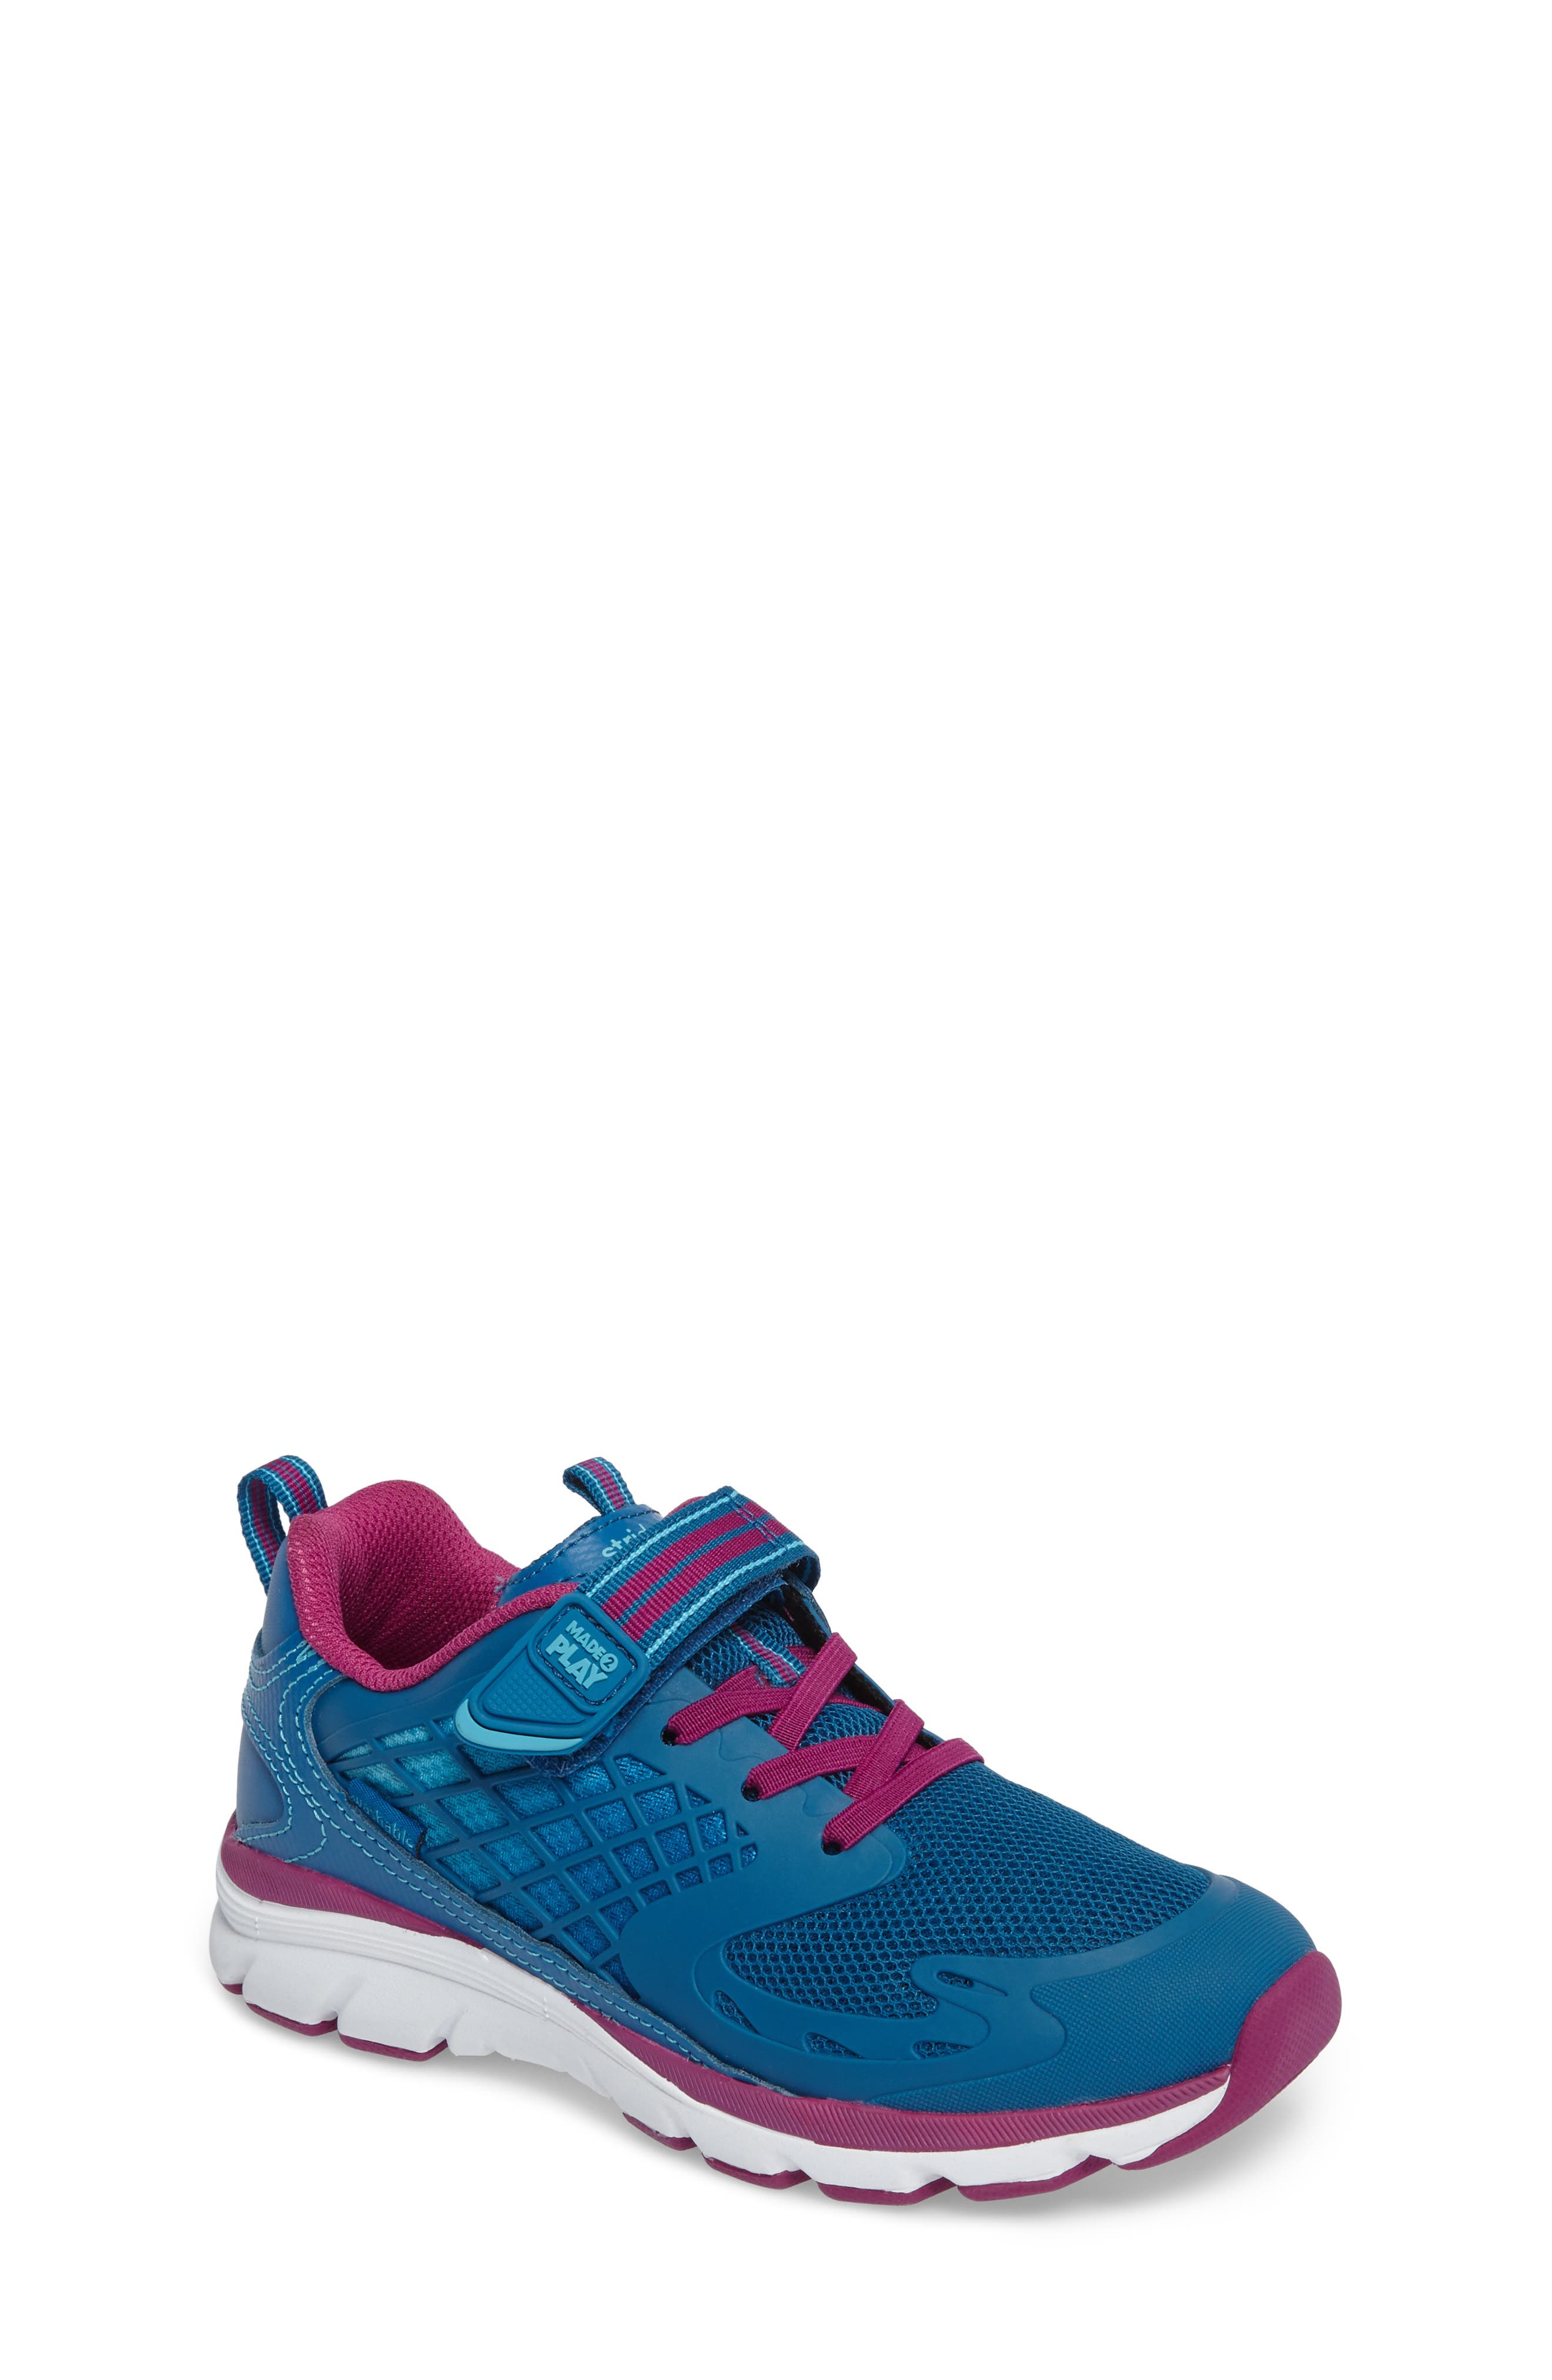 Main Image - Stride Rite Made 2 Play® Cannan Sneaker (Baby, Walker, Toddler & Little Kid)